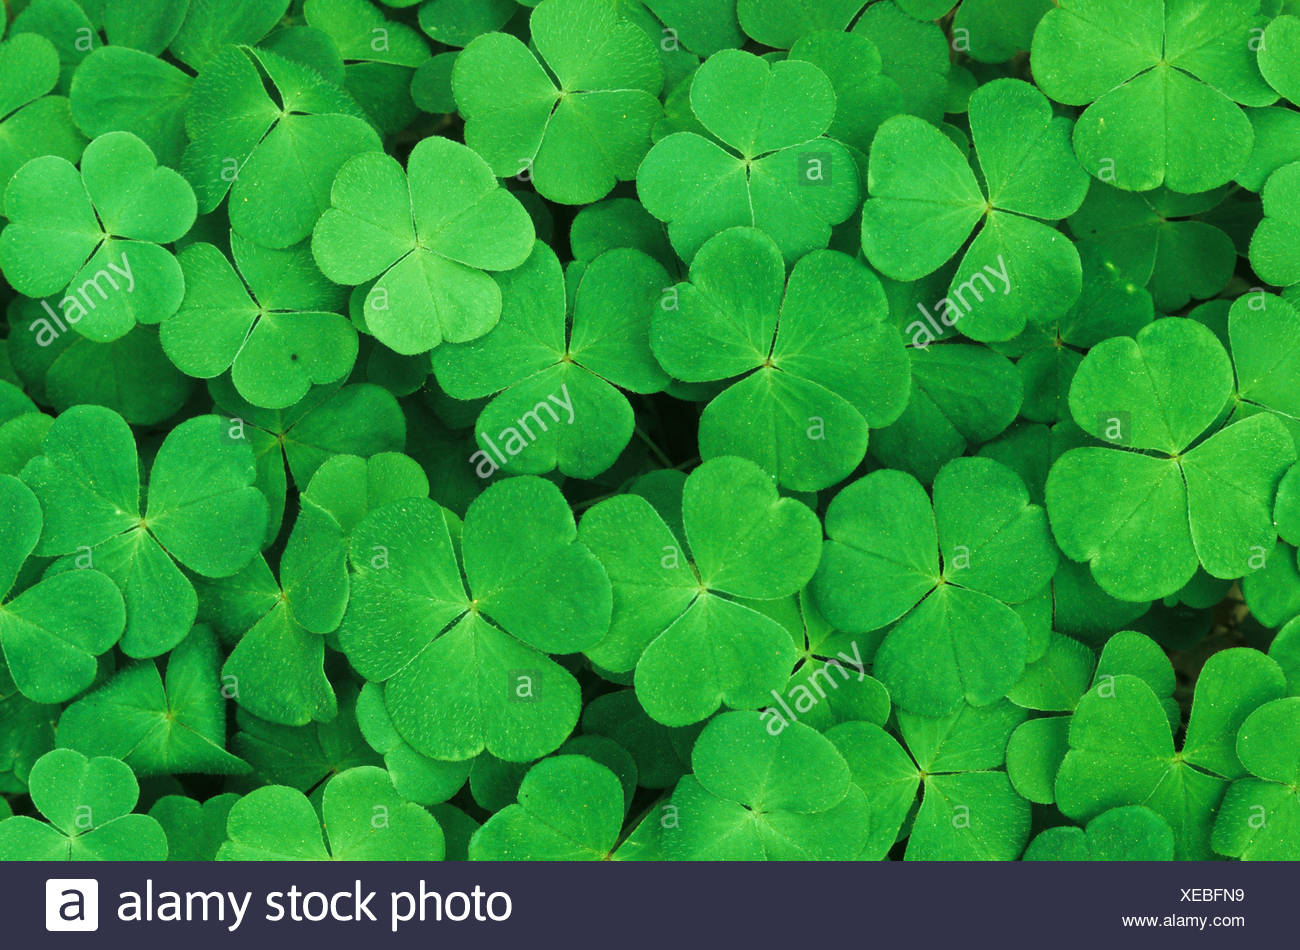 nature plants plant sour clover clover green color wood forest forest ground - Clover Color